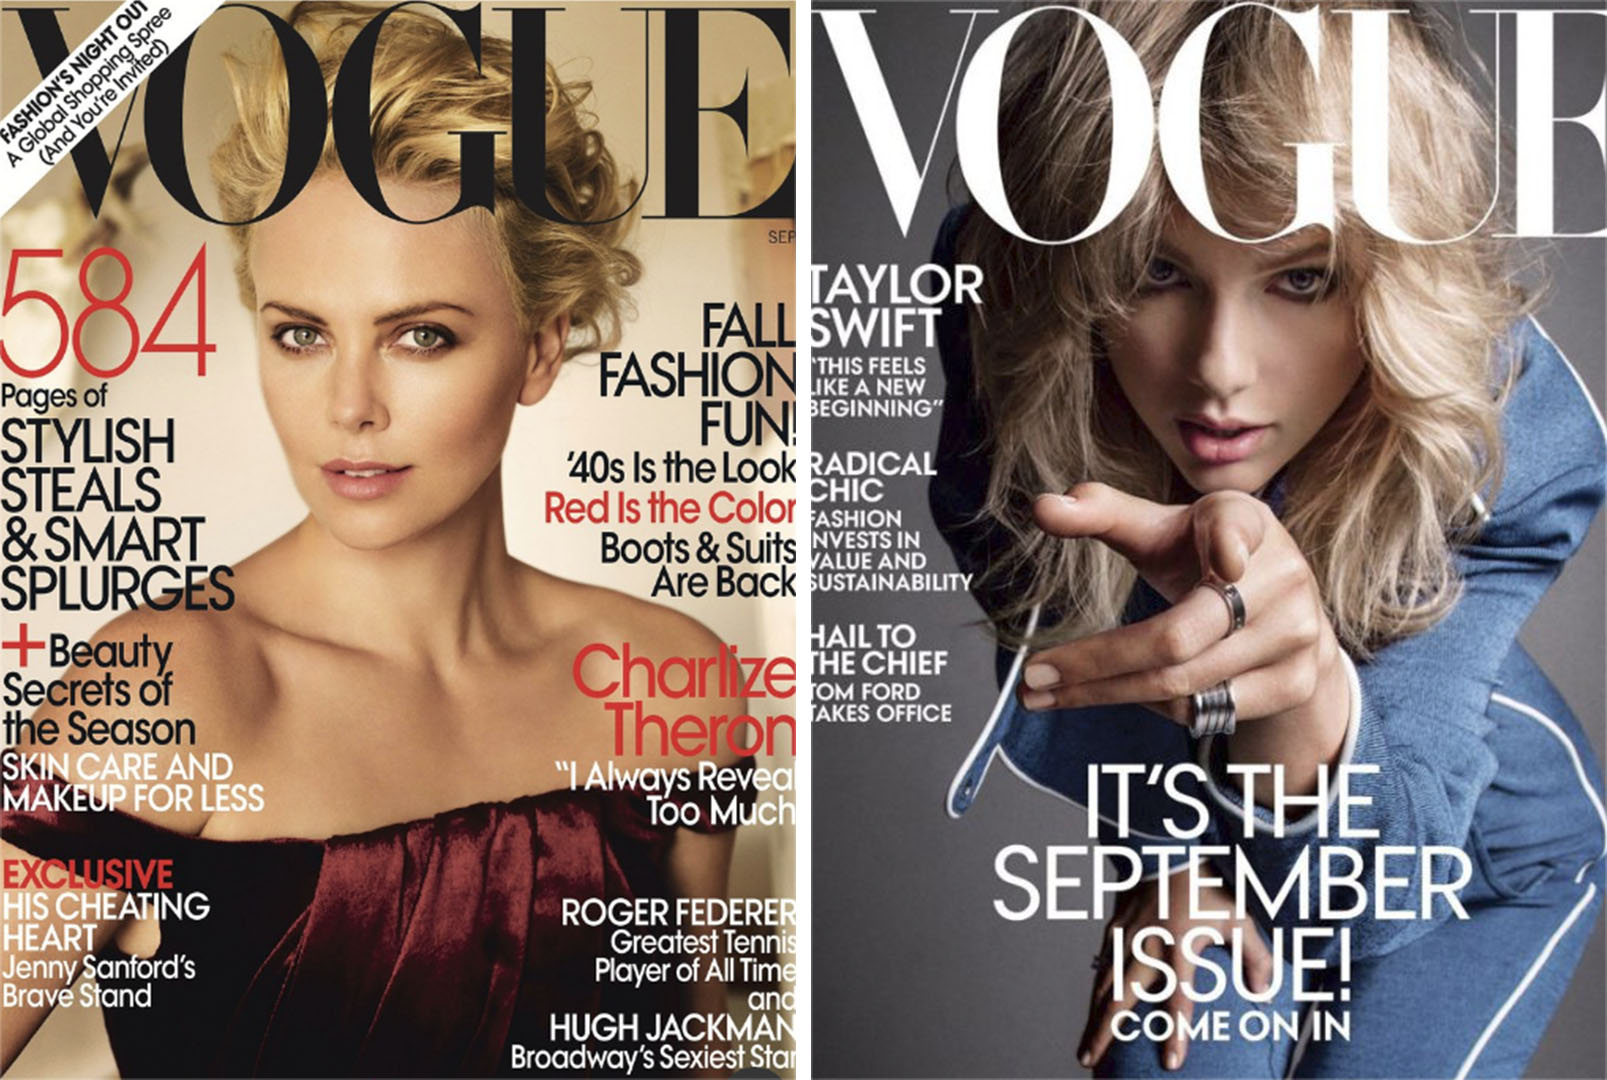 Vogue September issues 2009 compared 2019